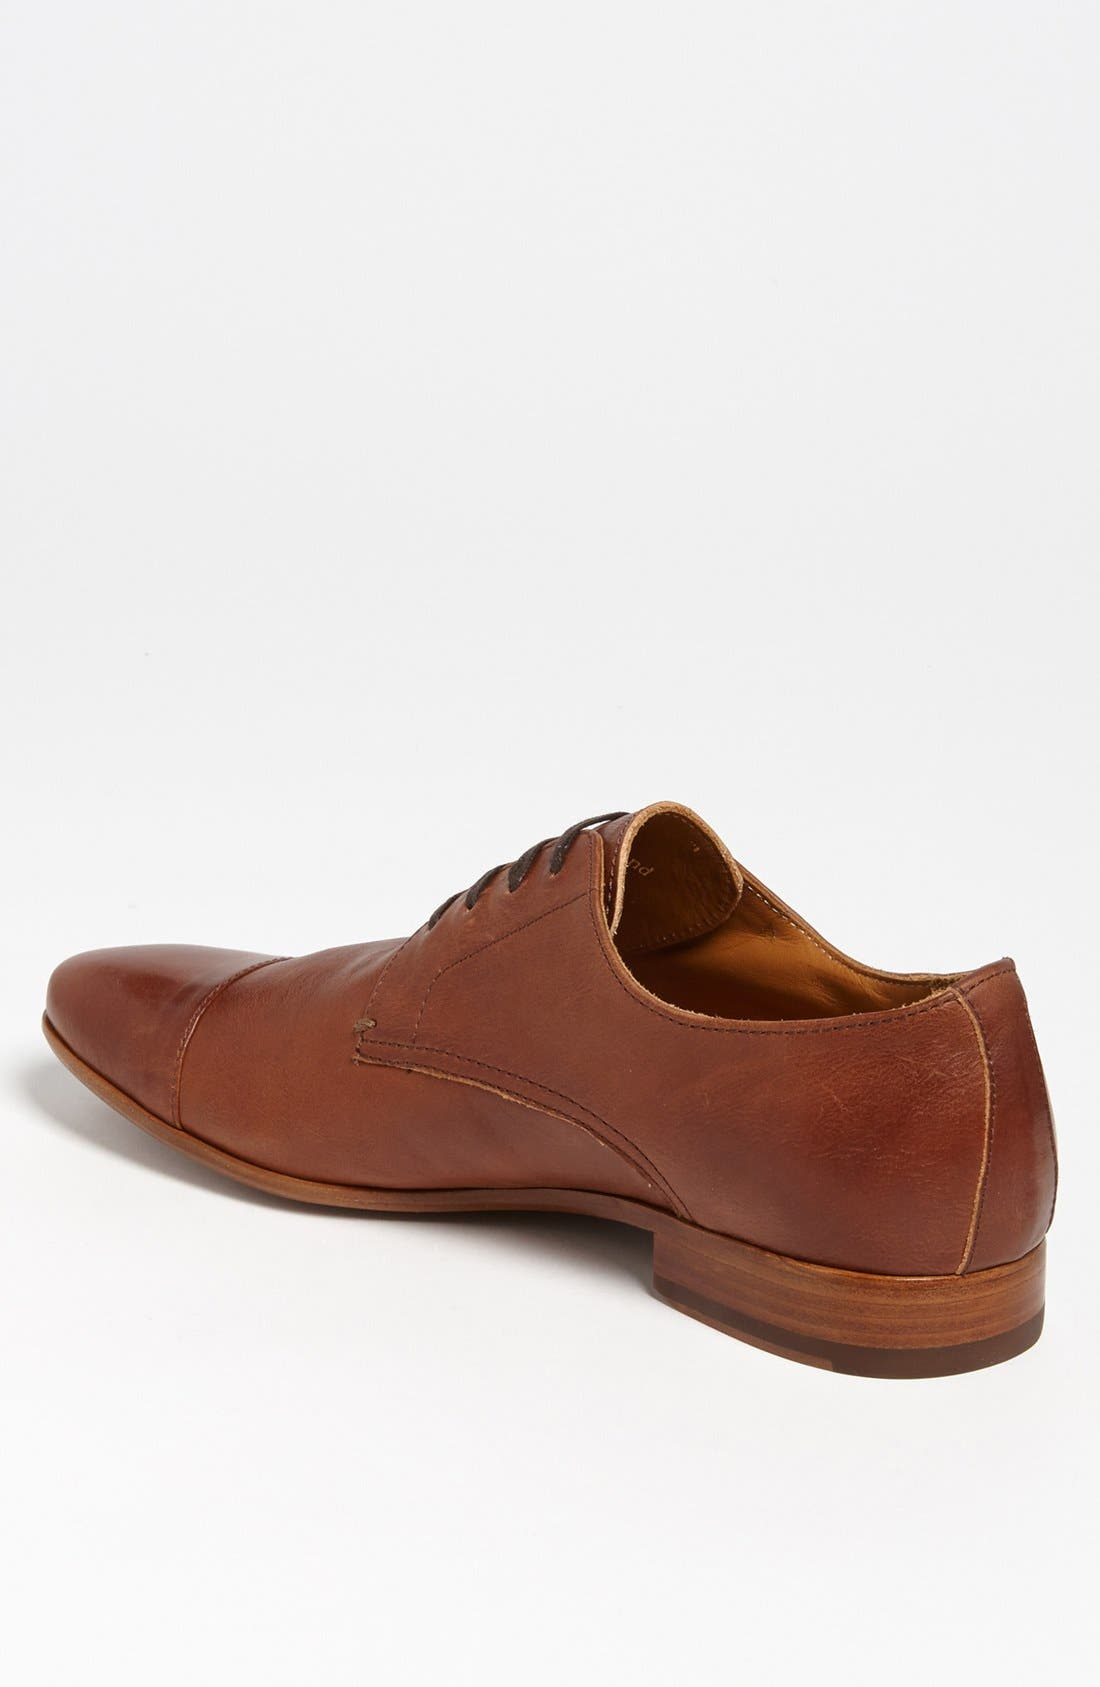 Alternate Image 2  - Maison Forte 'Blackburn' Cap Toe Derby